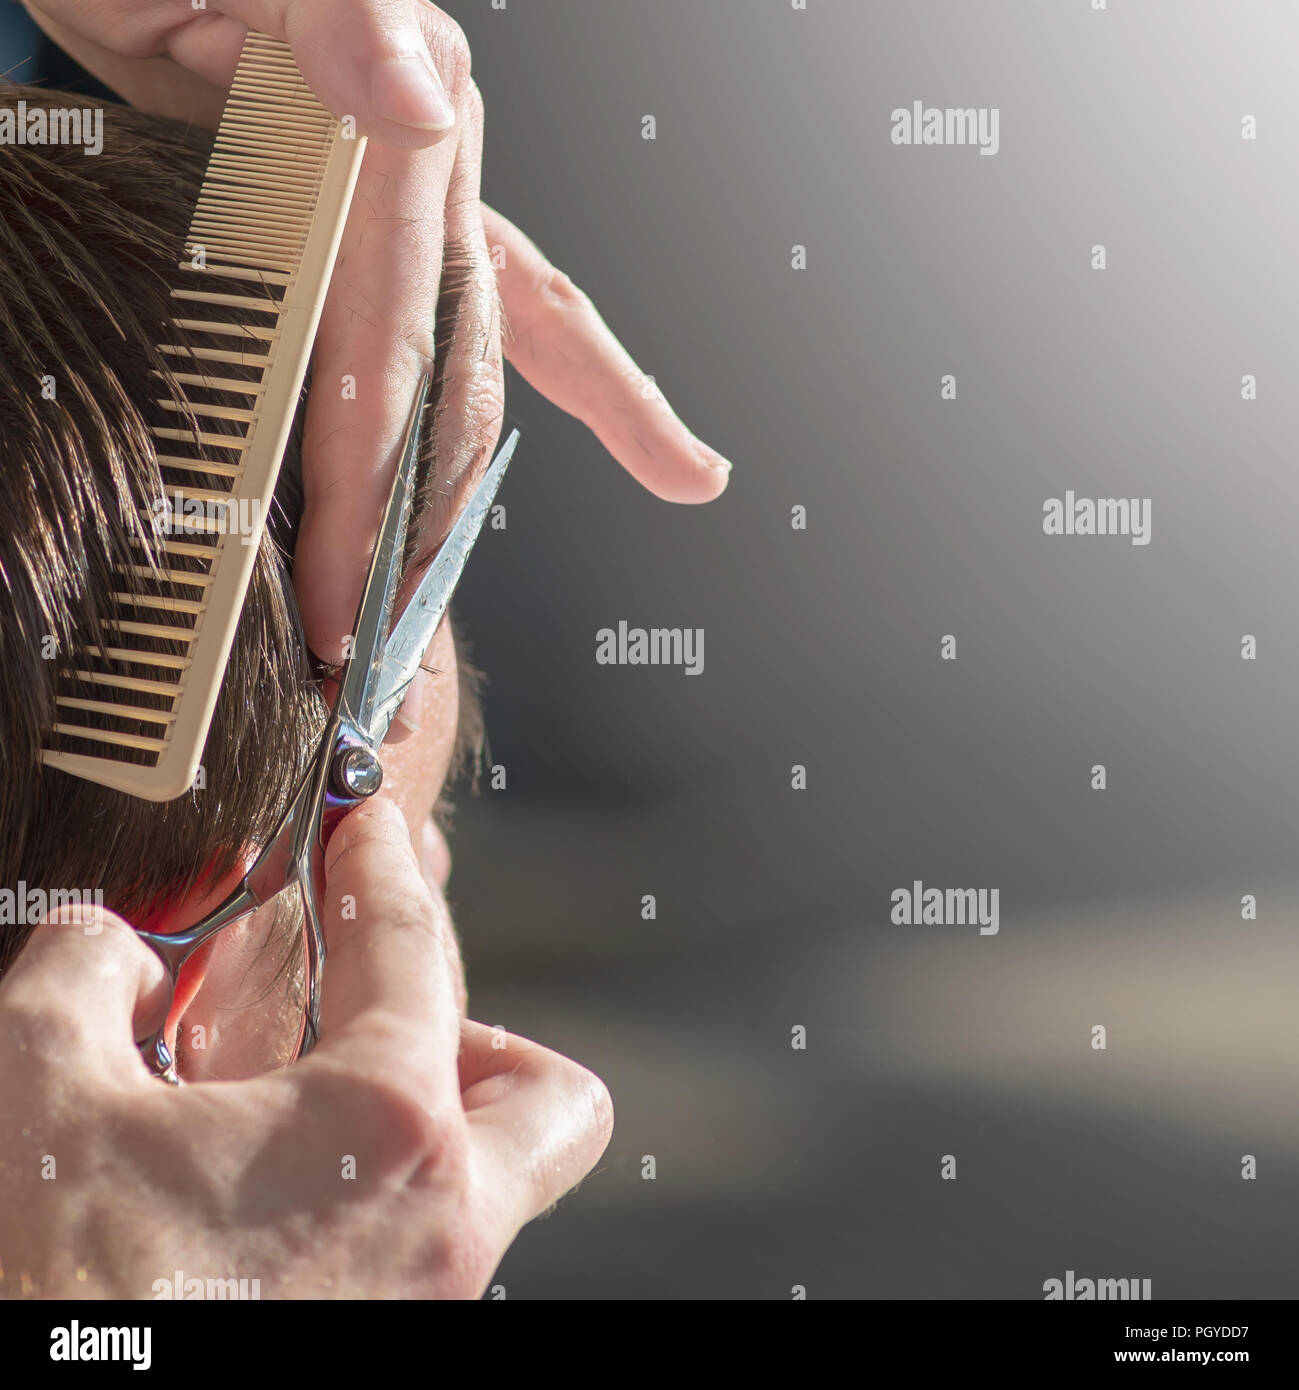 Hairdresser cutting hair of customer at salon. - Stock Image